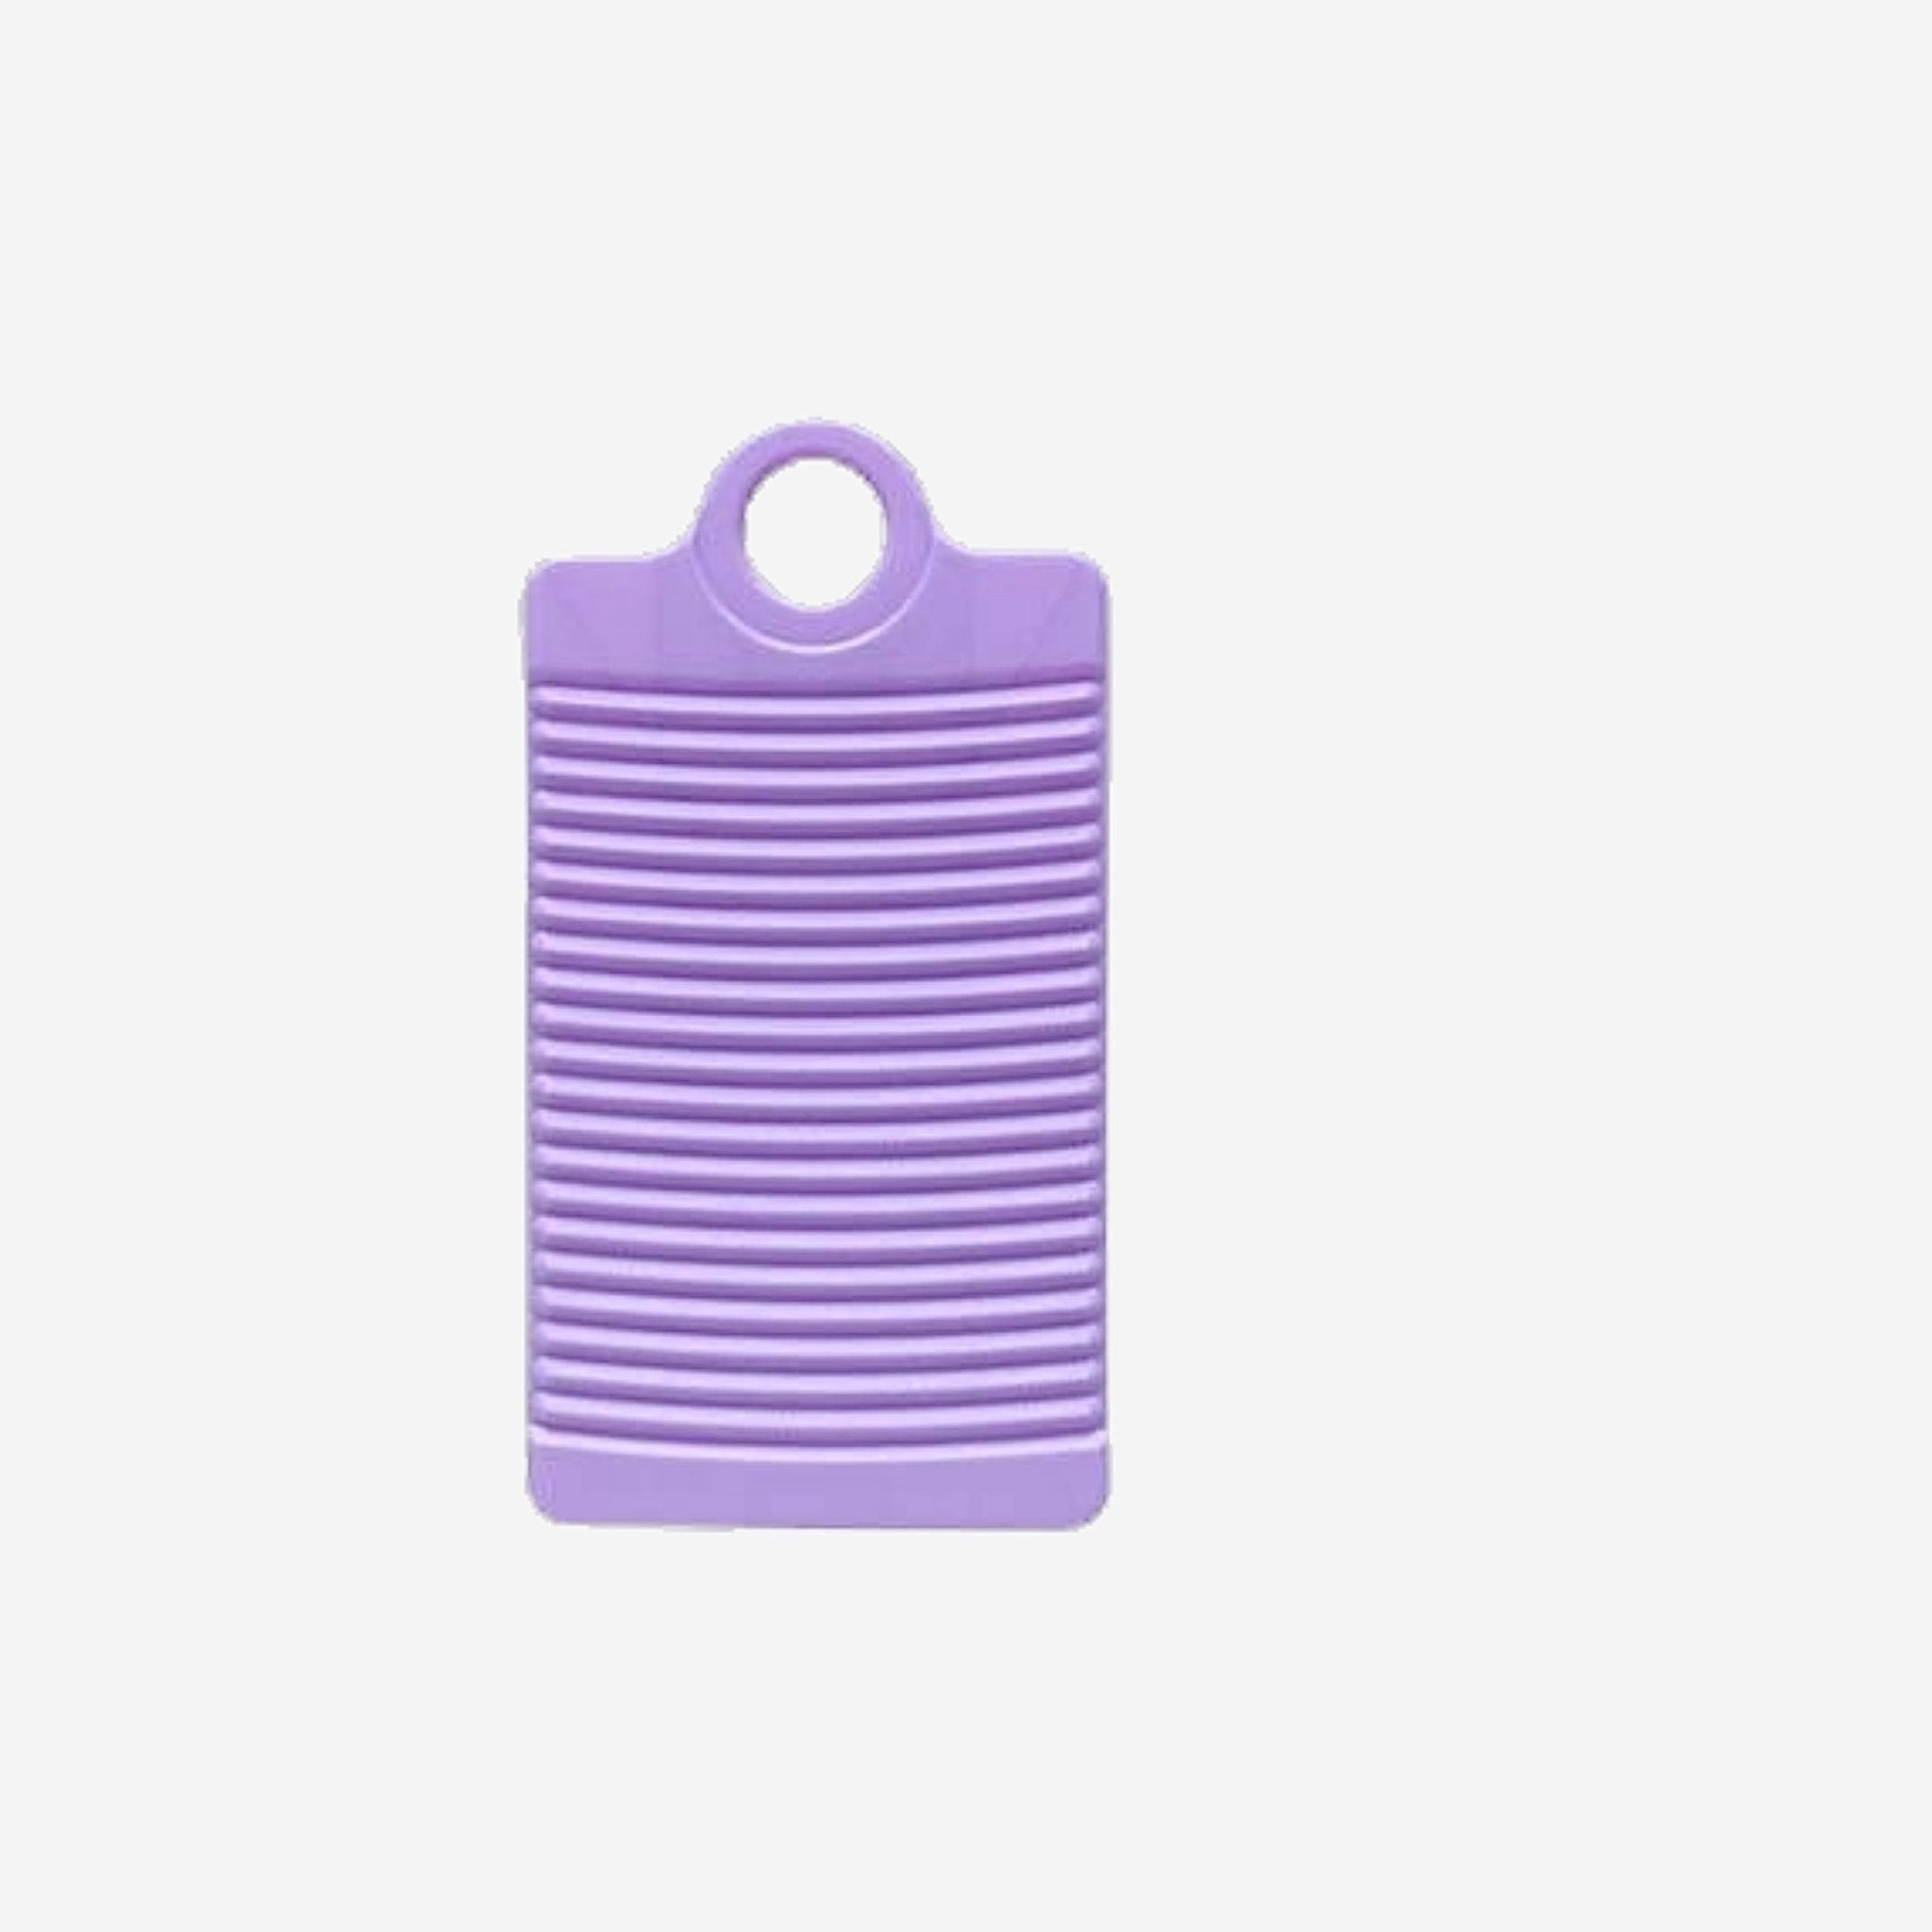 Purple Anti slip Thick Mini Washboard Laundry Accessories Washing Board Clothes Cleaning Tools Trend